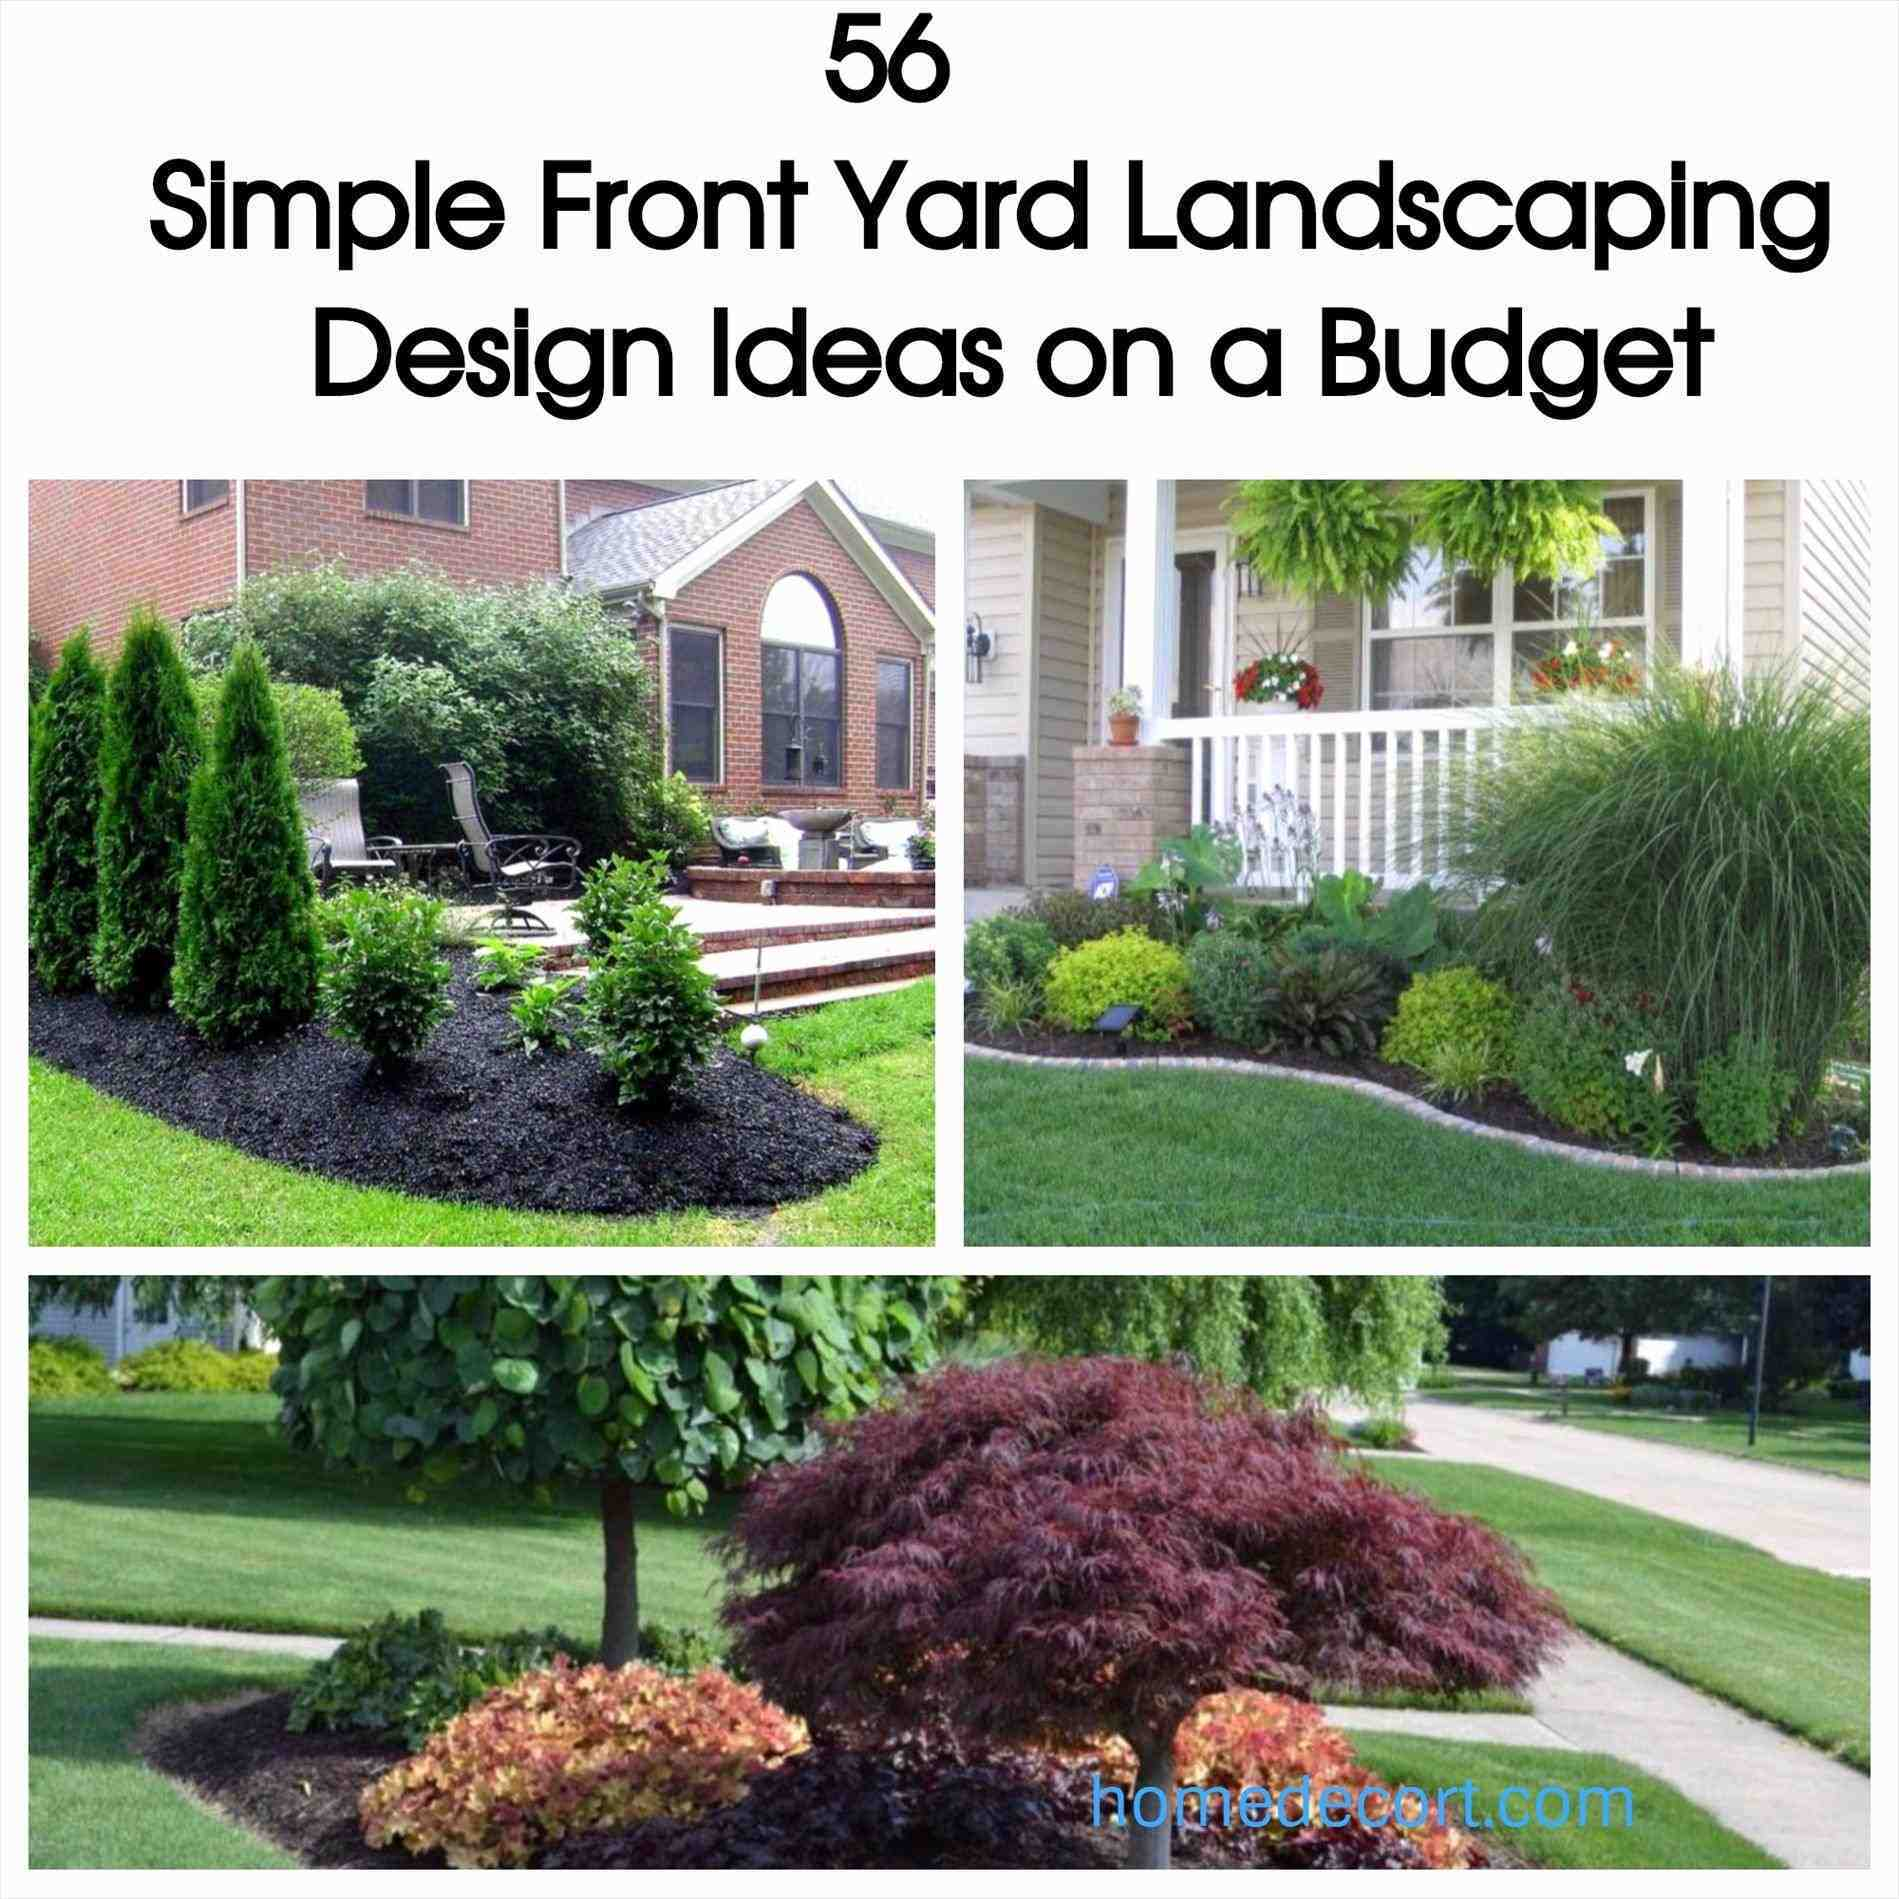 25+ Simple Front Yard Landscaping Ideas On A Budget Pictures and